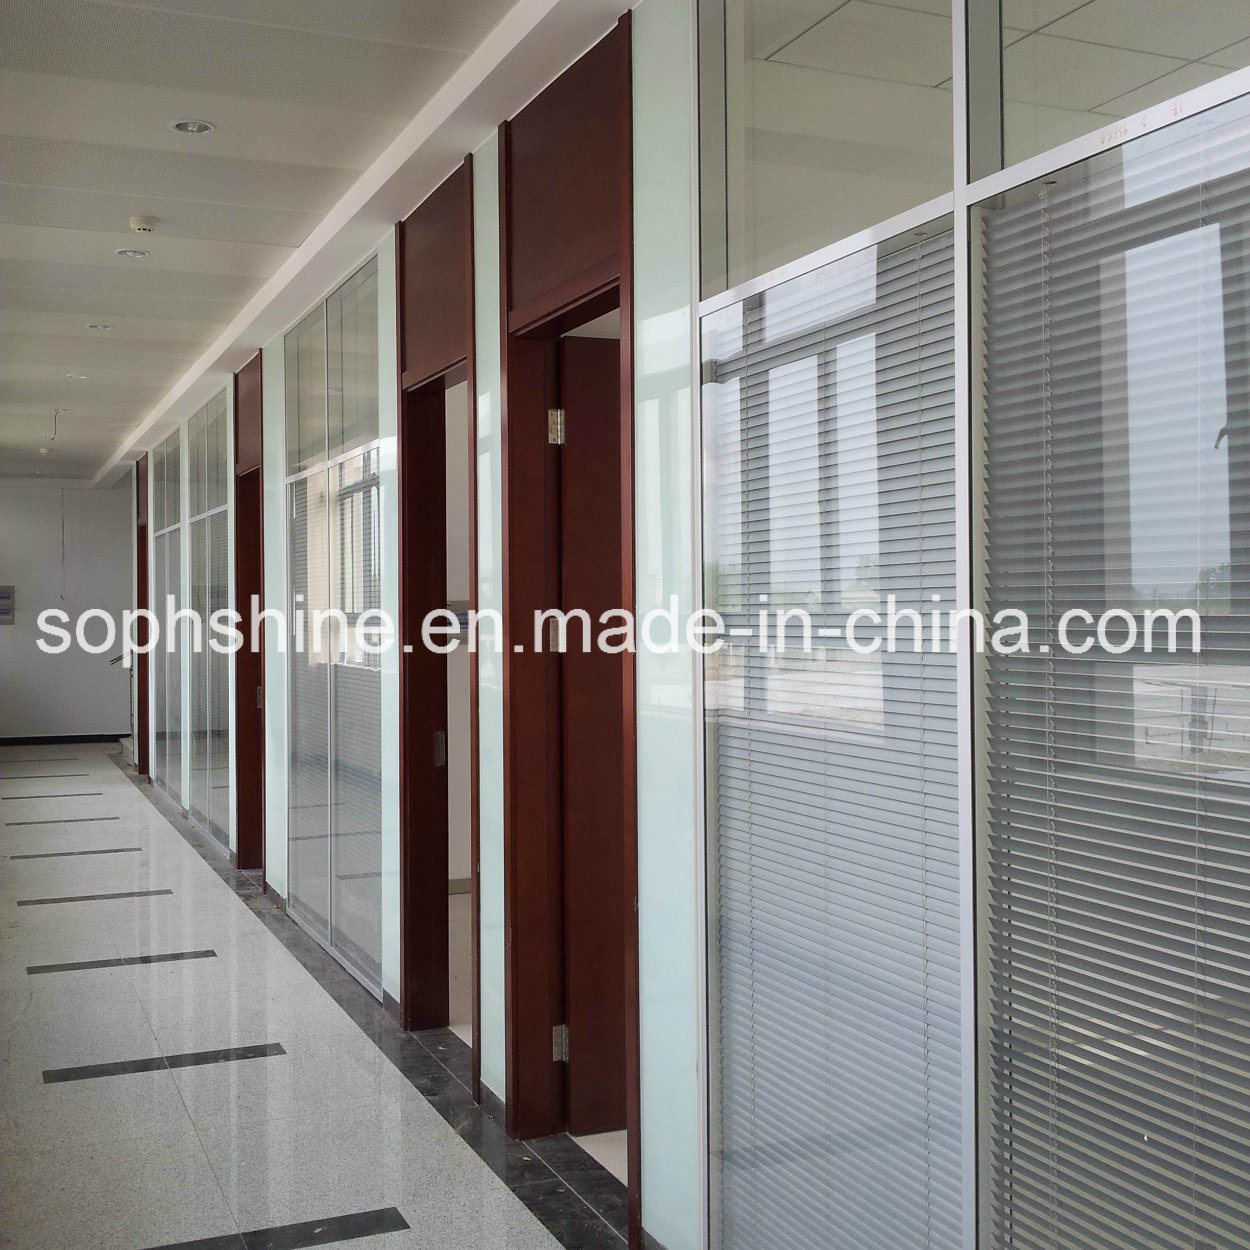 Motorized Aluminium Venetian Blinds Built in Double Hollow Tempered Glass